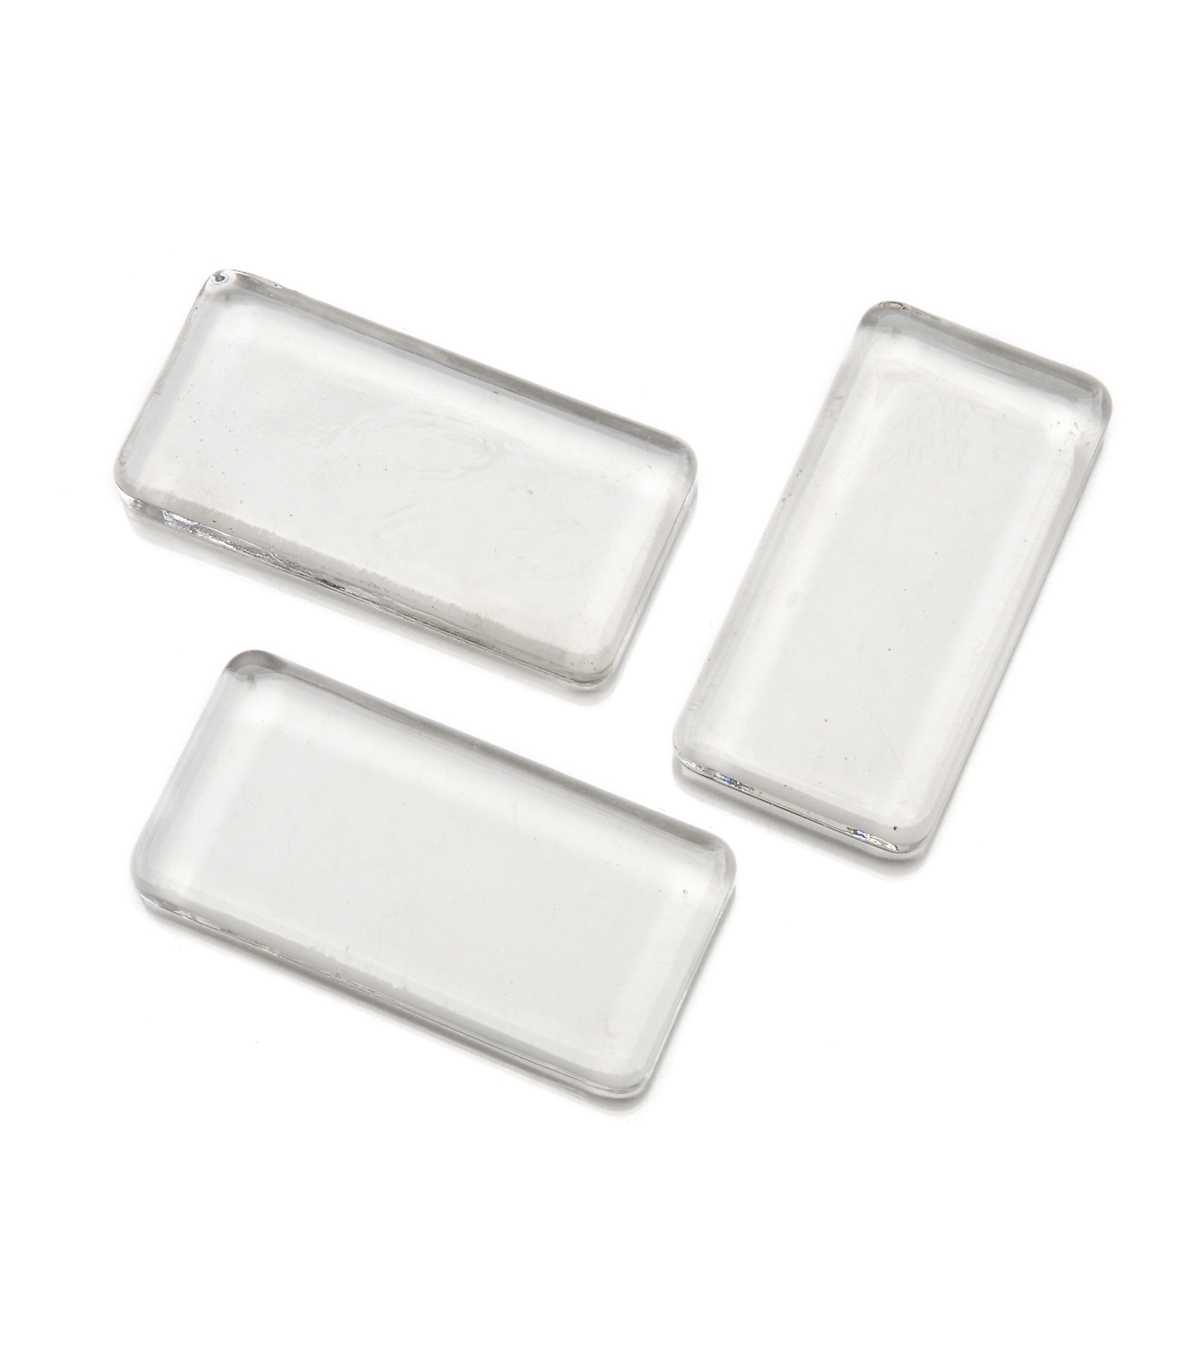 Glass Jewelry Tiles, 25mm x 50mmRectangle, 3pc/pkg